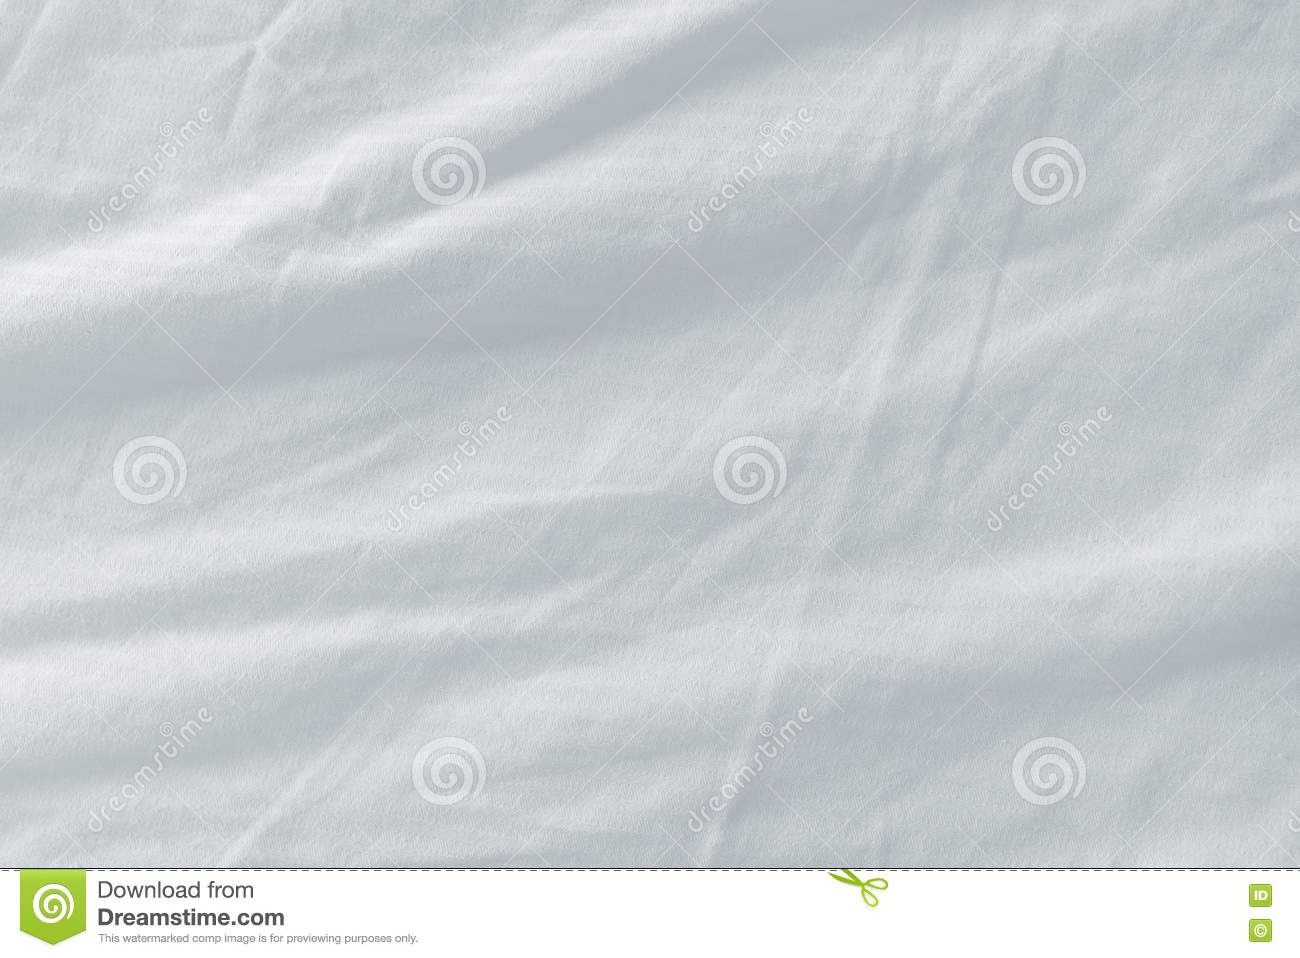 Download Used Bed Sheets Texture Stock Image. Image Of Cotton   81071259